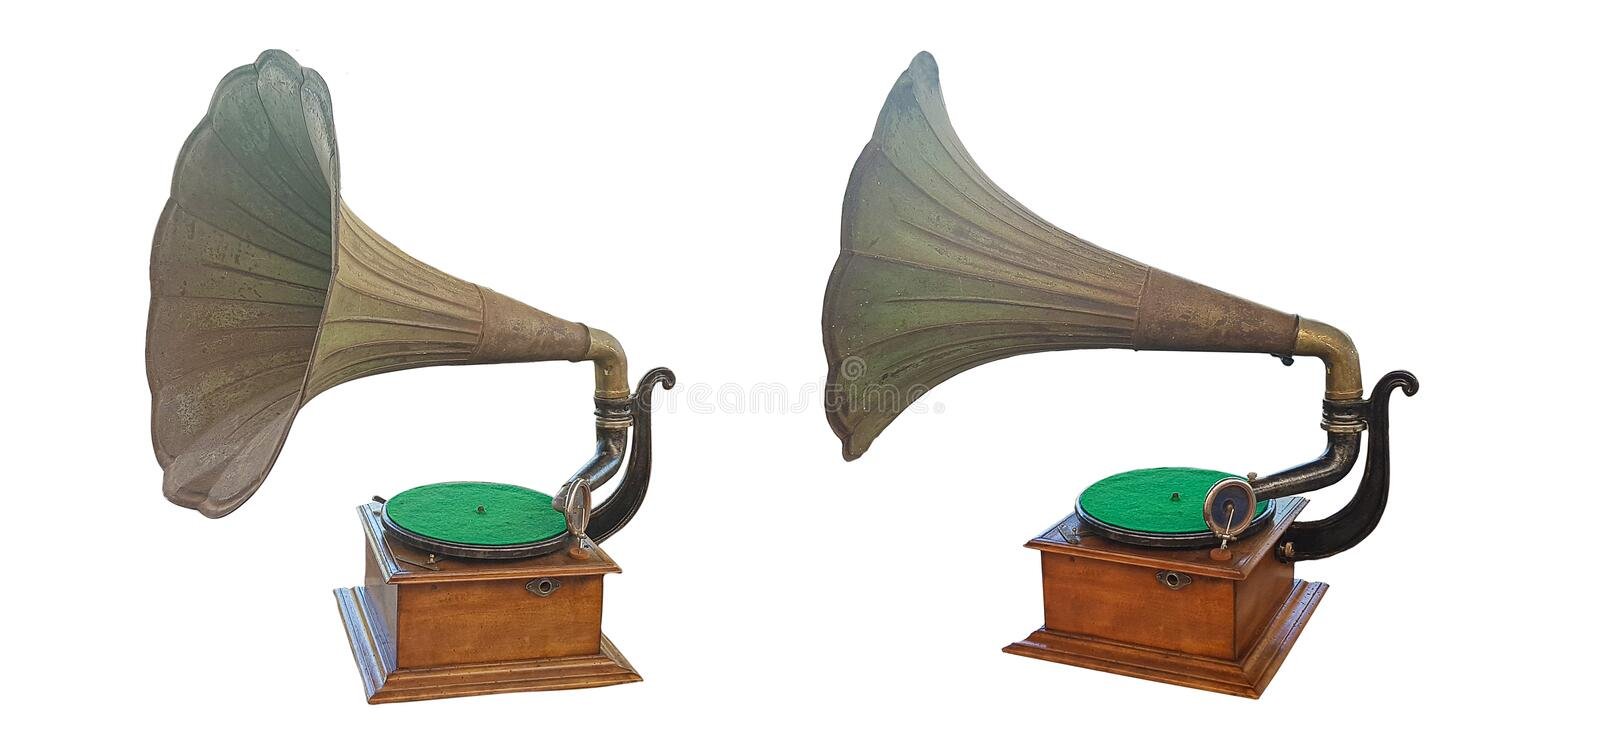 Old gramophone with plate and horn speaker on wooden box on white background. Old gramophone with plate and horn speaker on wooden box isolated on white royalty free stock photography